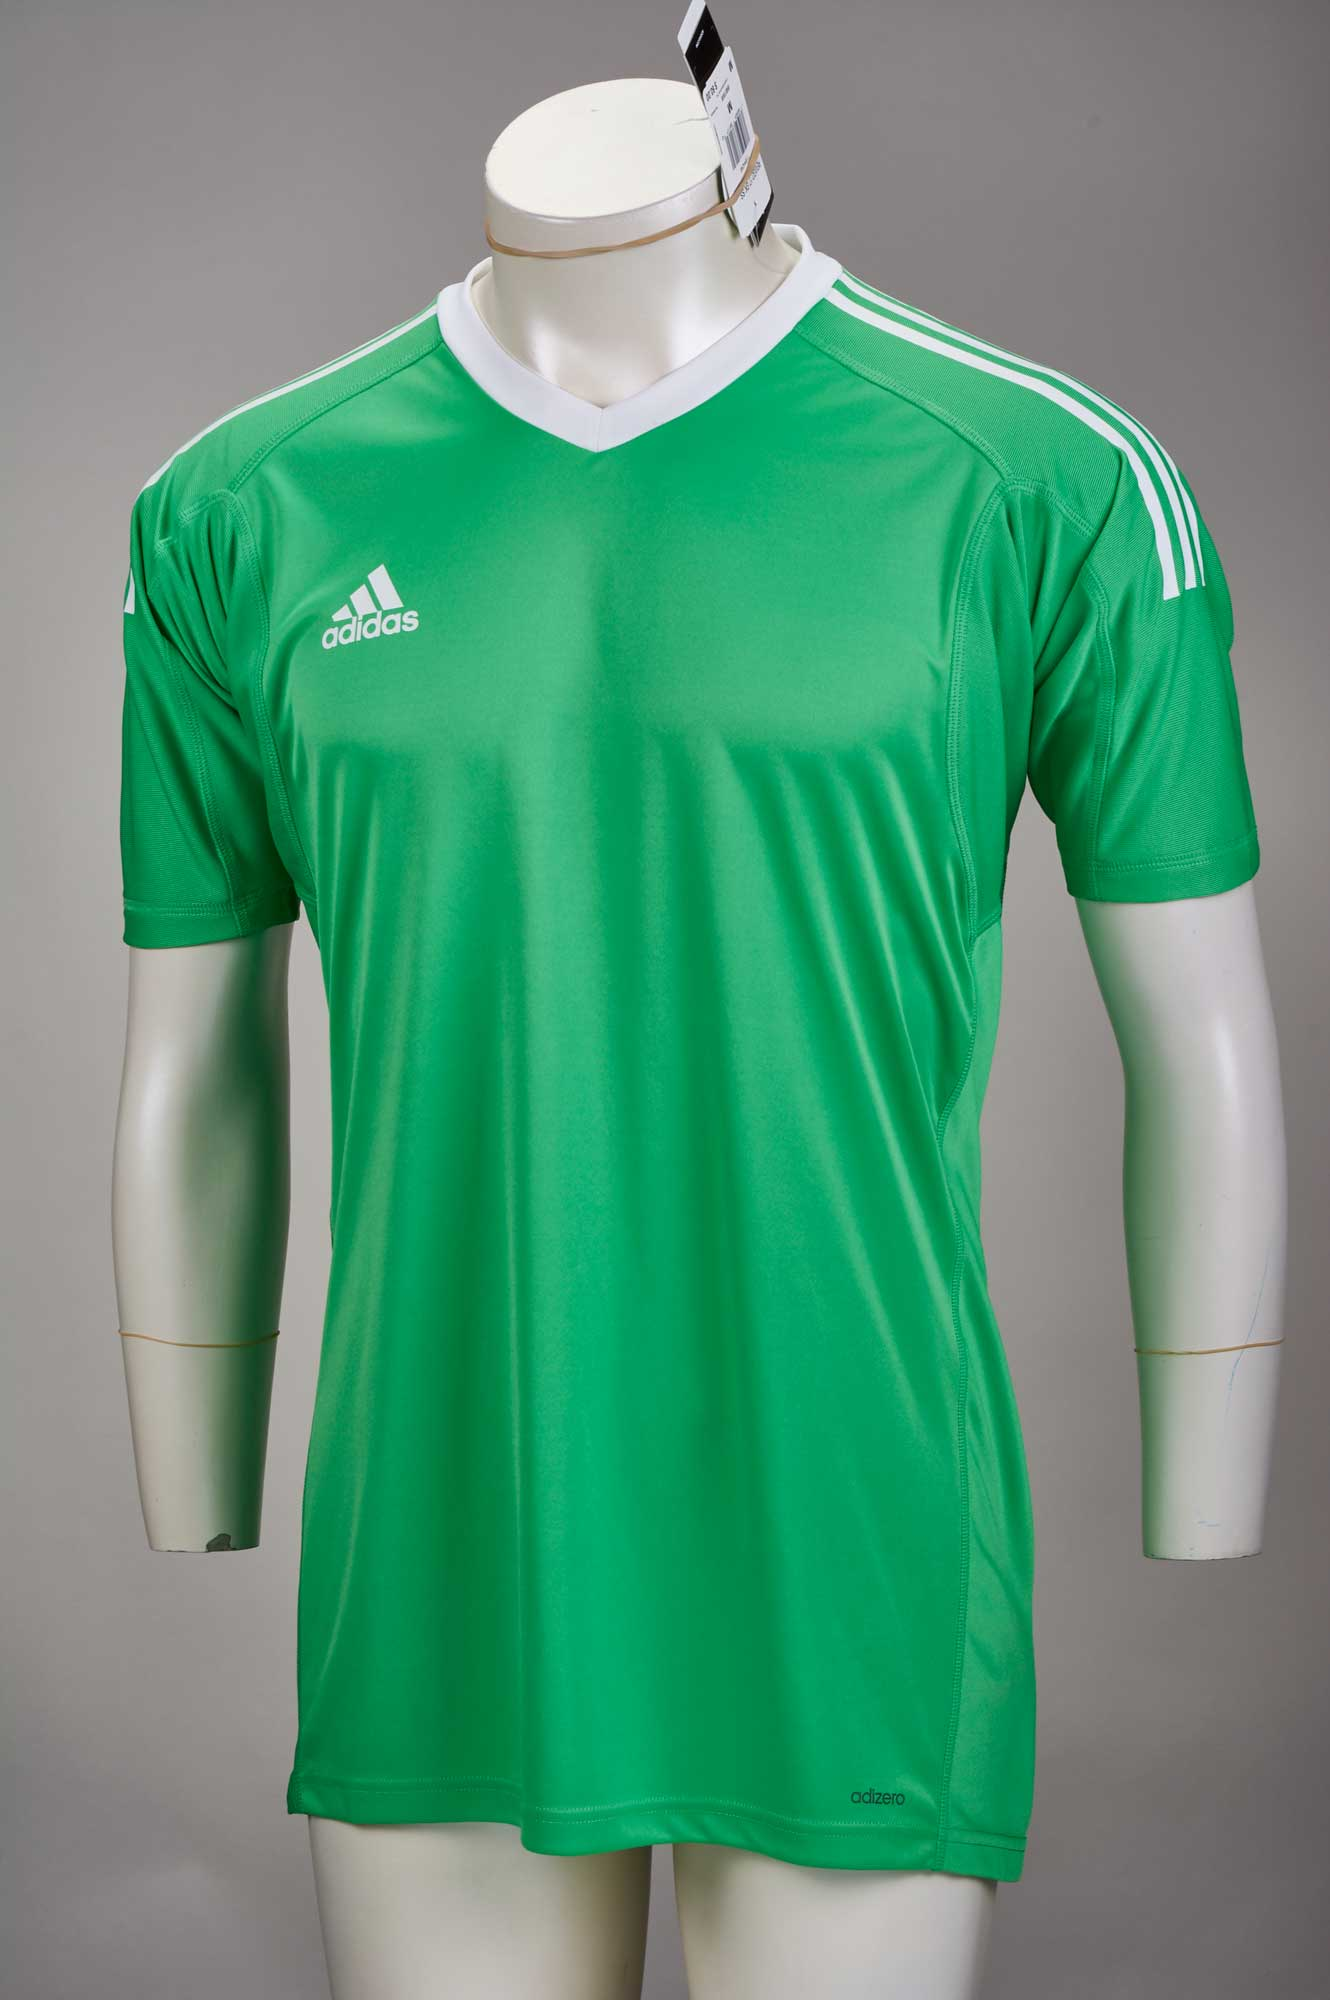 6abb876263aa3 adidas Revigo 17 Short-Sleeve Goalkeeper Jersey - Green